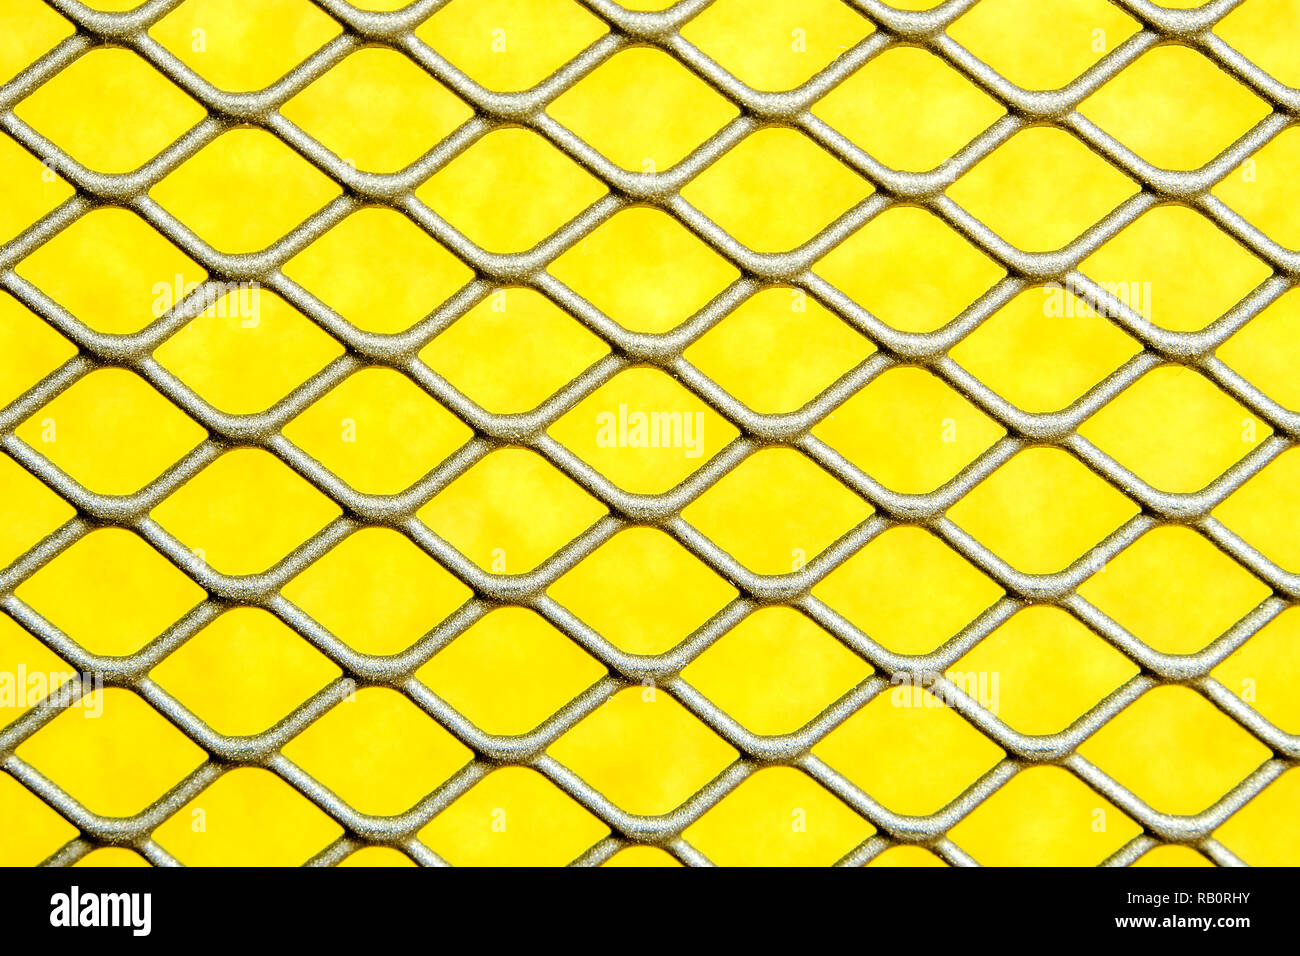 closeup of silver grey colour metal wire mesh fence with golden background shade Stock Photo